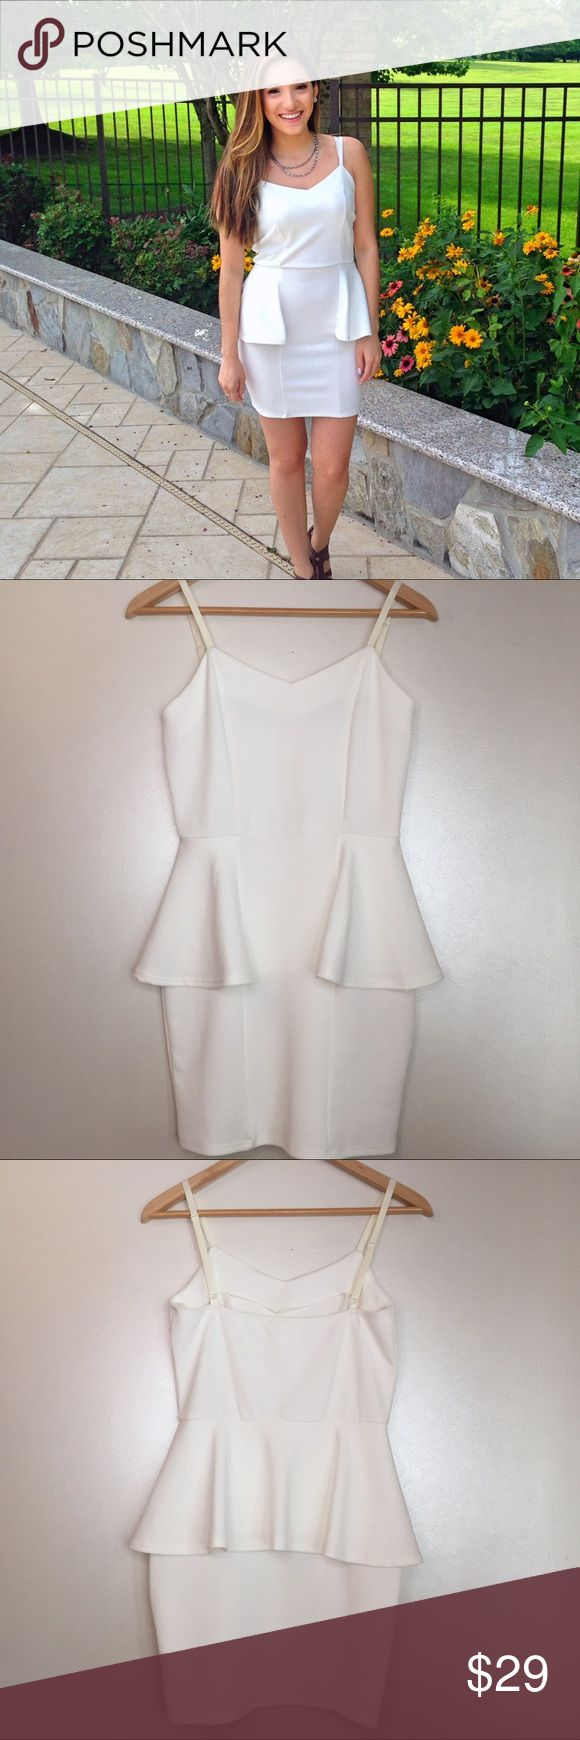 White Peplum Dress White peplum dress with adjustable straps. Size Small. Worn once, in excellent condition. Everly Dresses